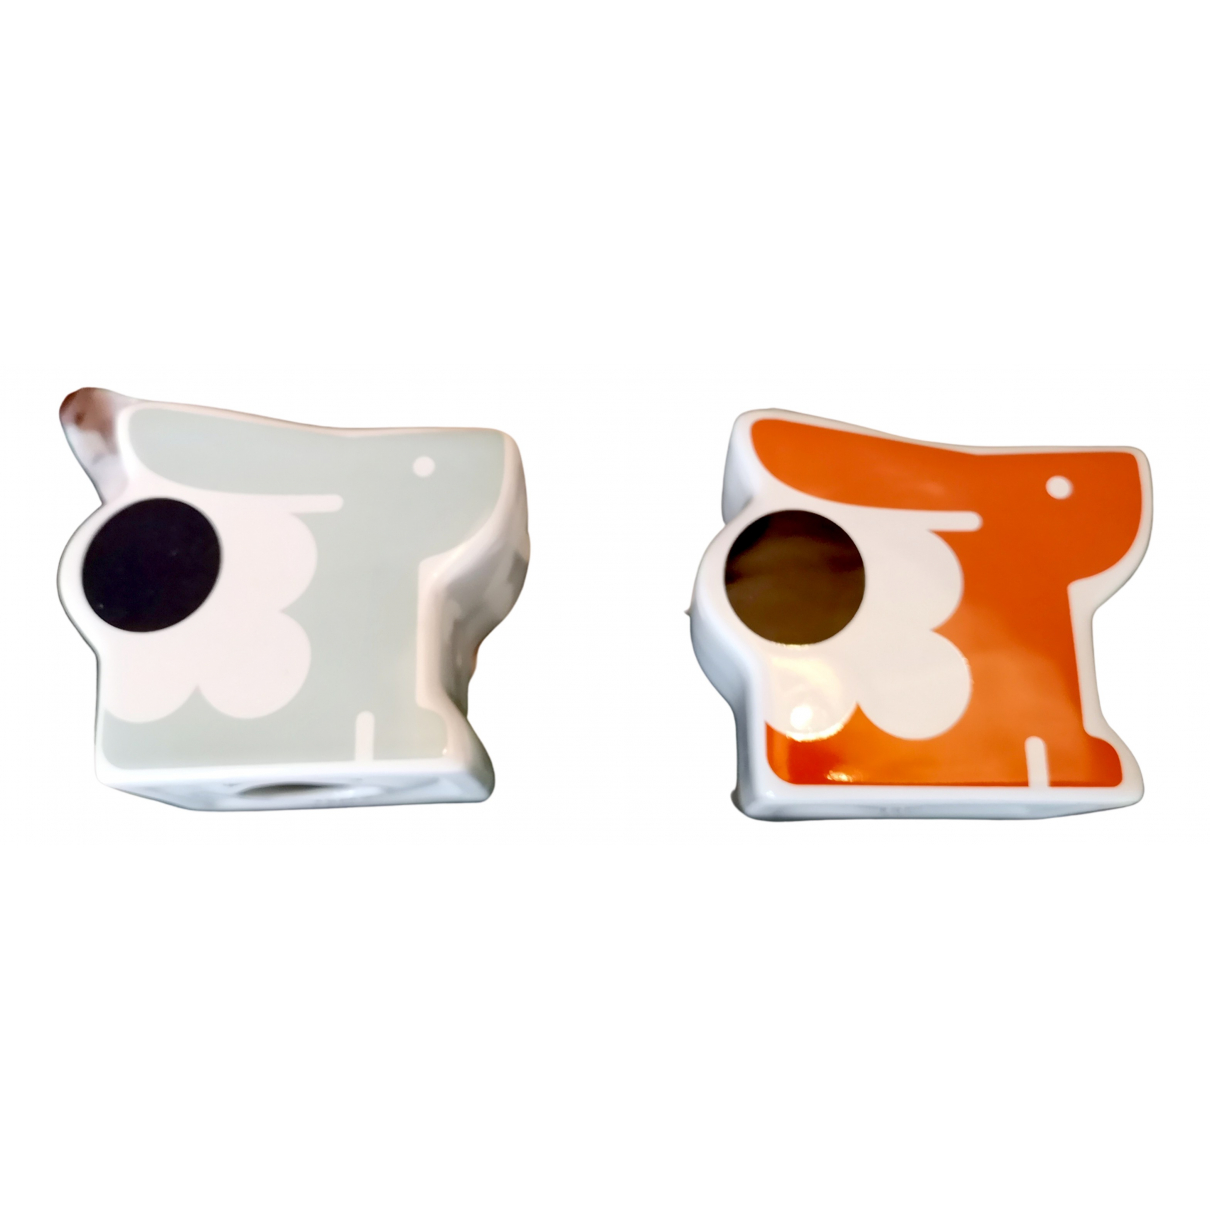 Orla Kiely - Arts de la table   pour lifestyle en porcelaine - multicolore